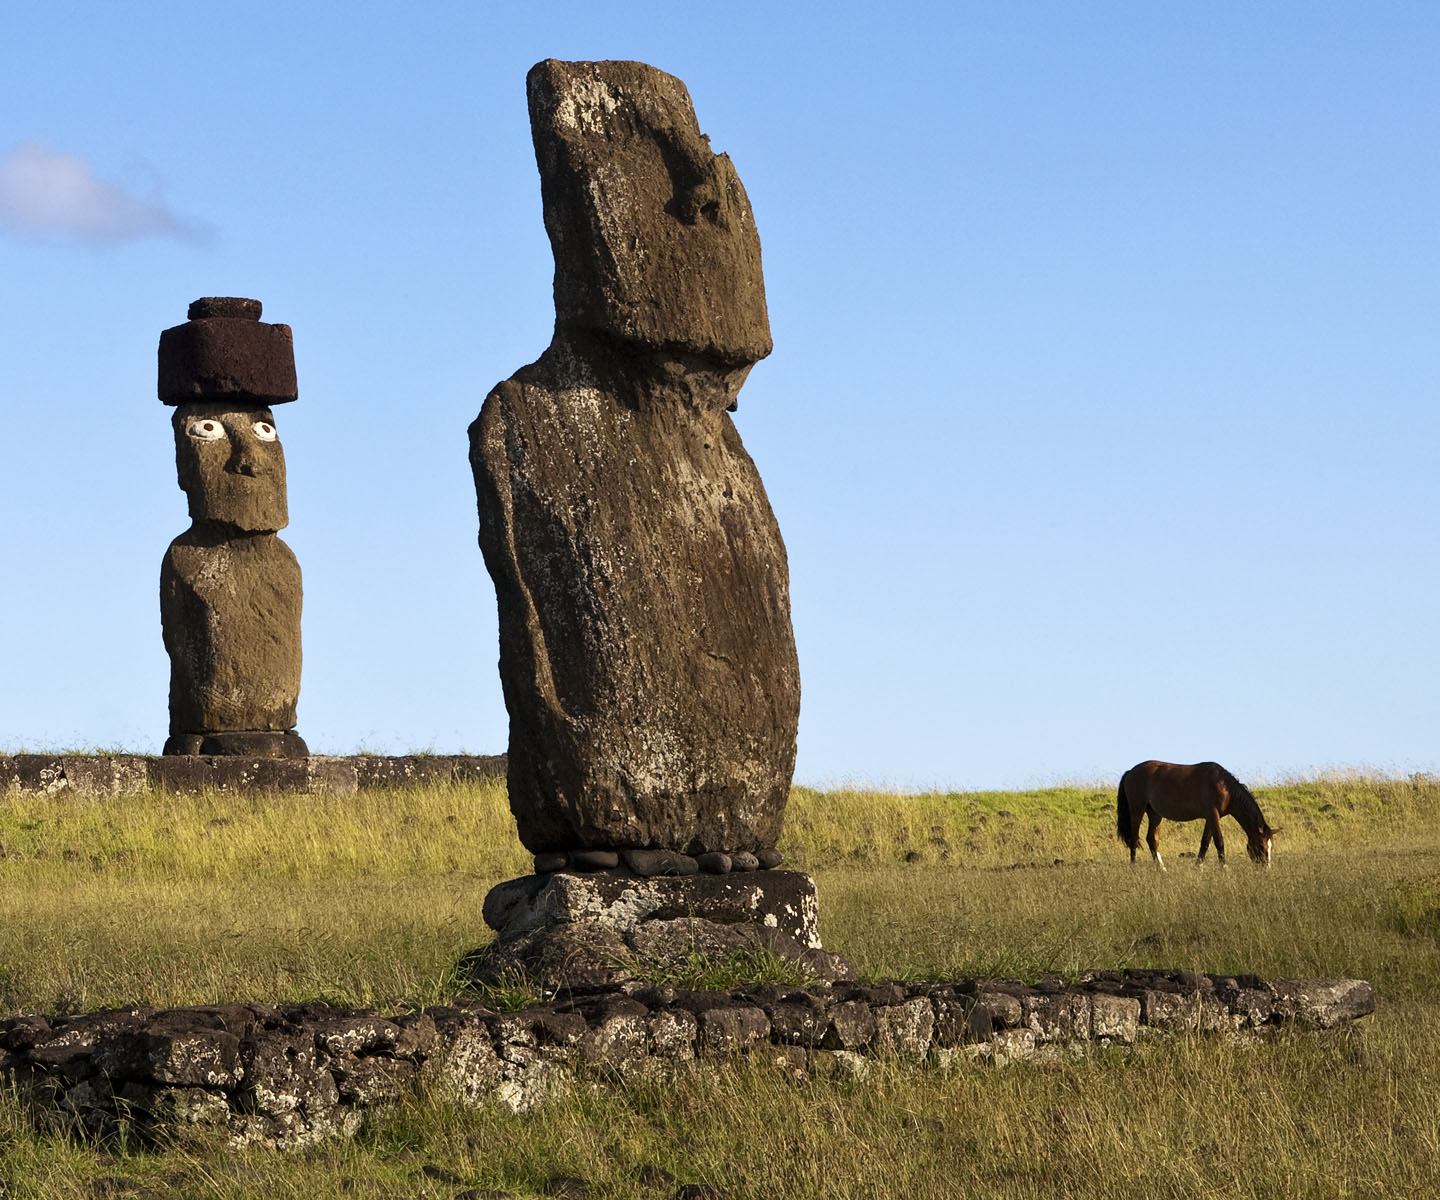 Grazing Horse Illustrates Size of Moais, Easter Island